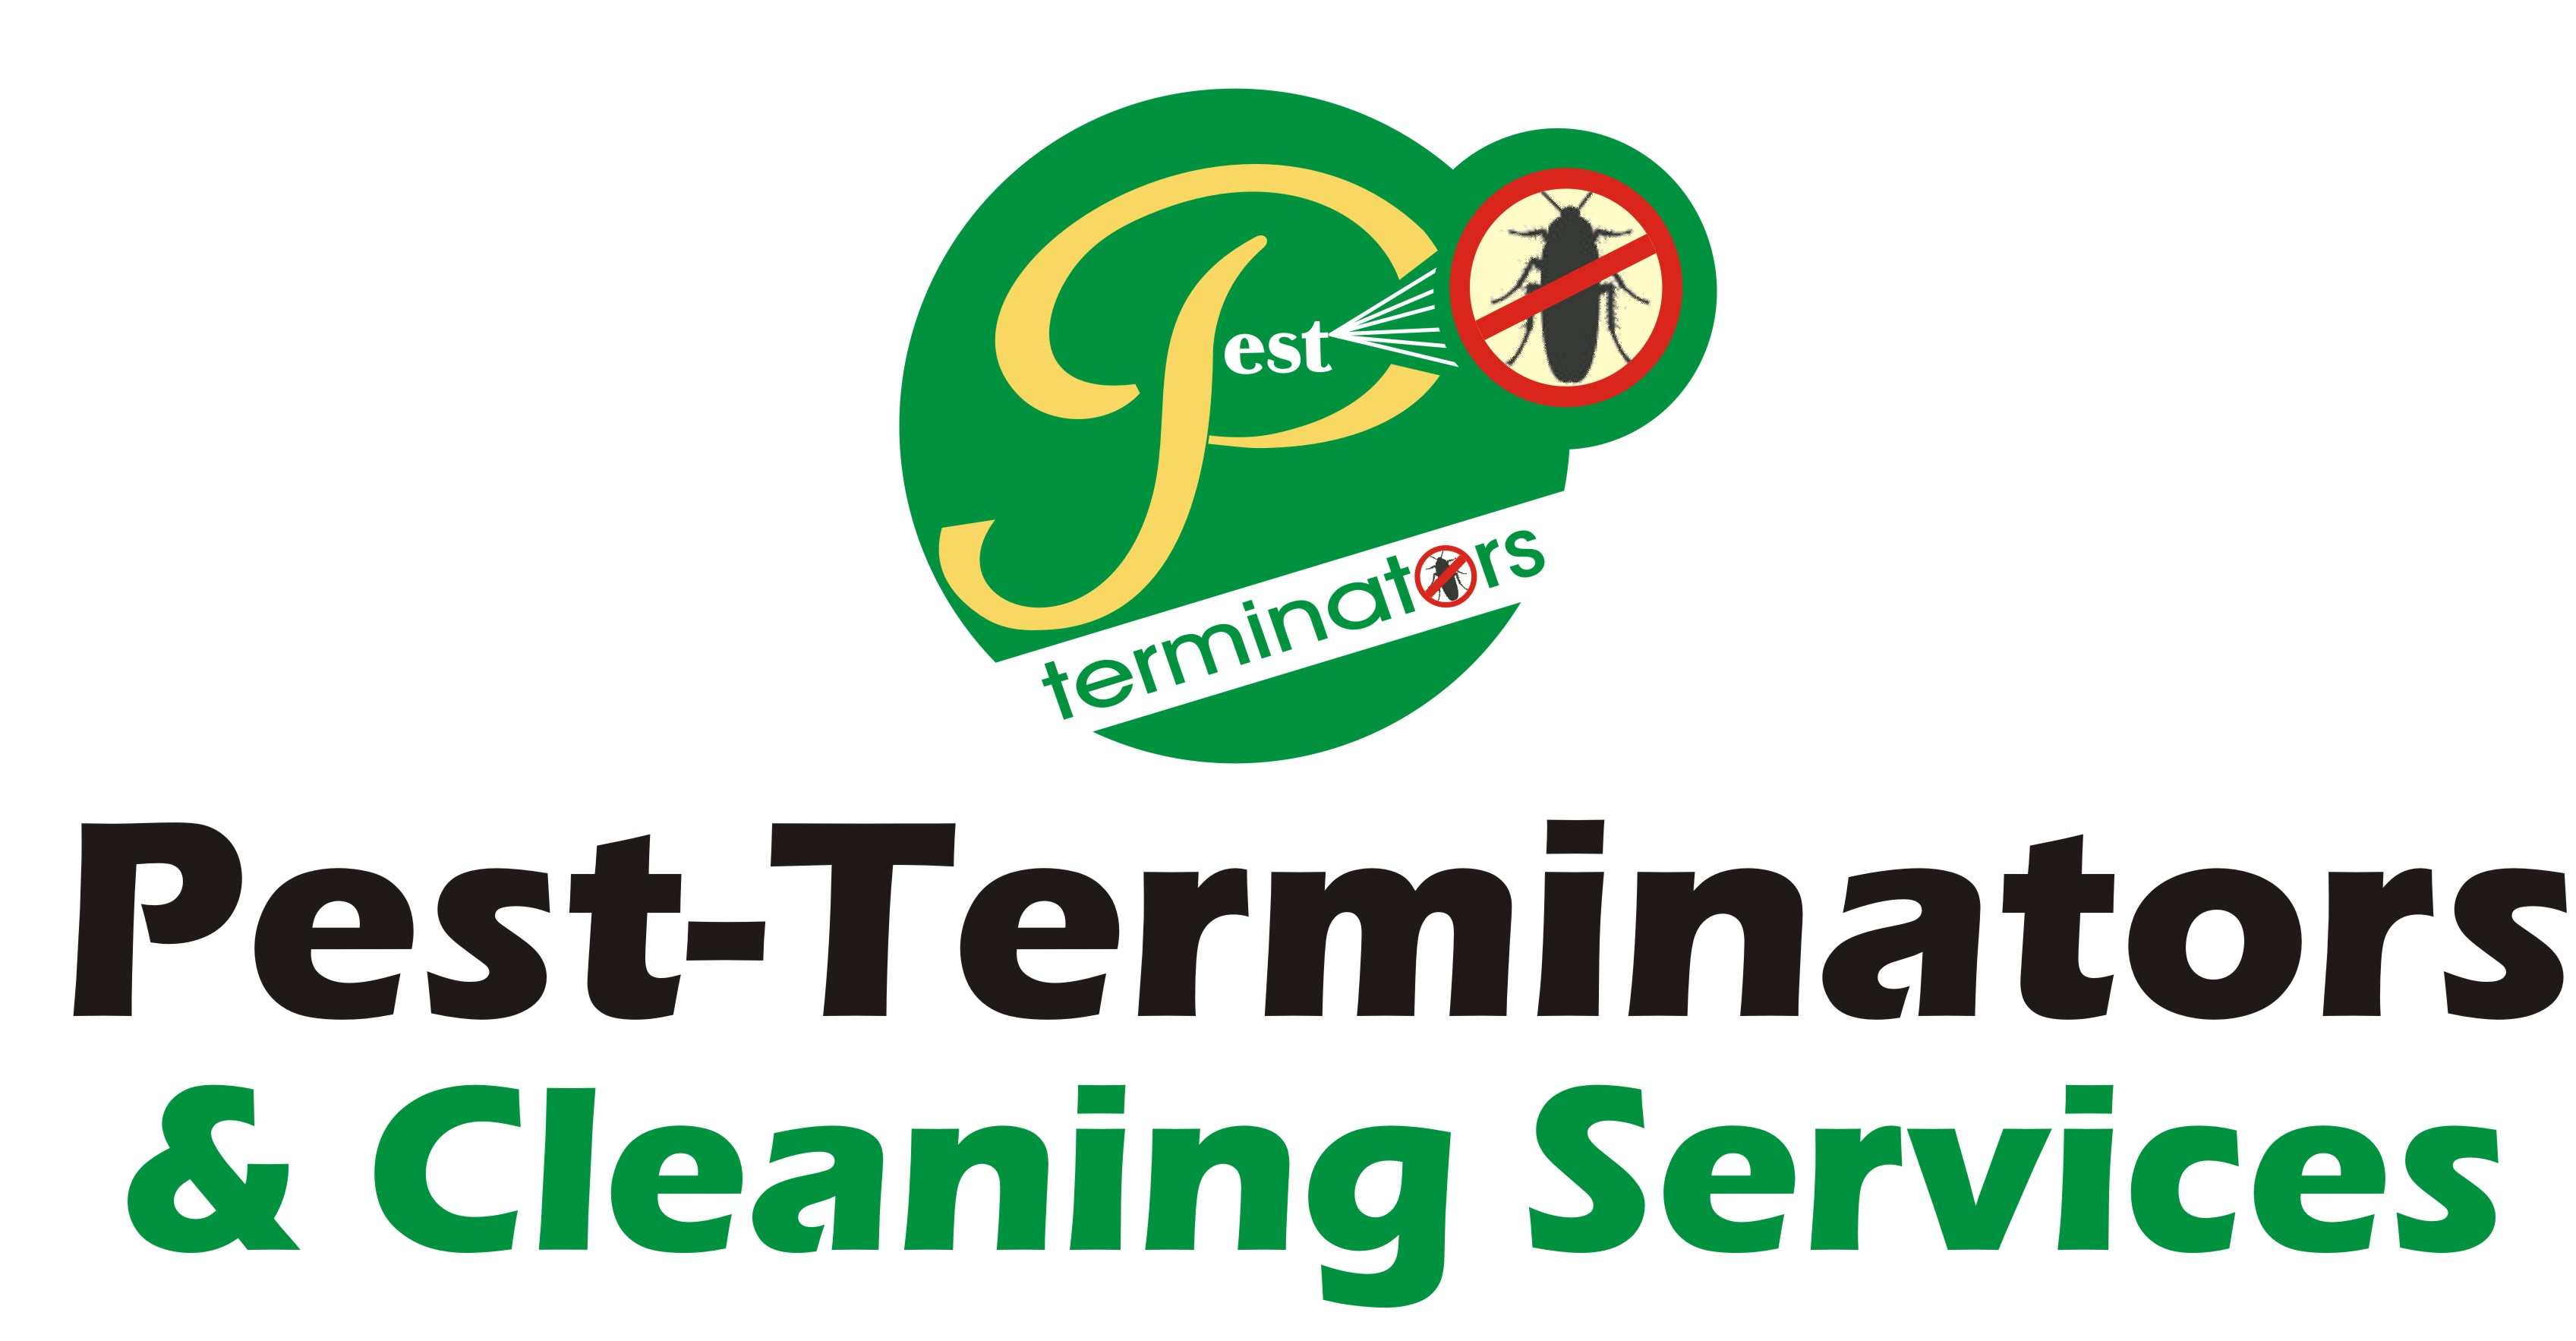 Pest Terminators And Cleaning Services,Lagos, Nigeria